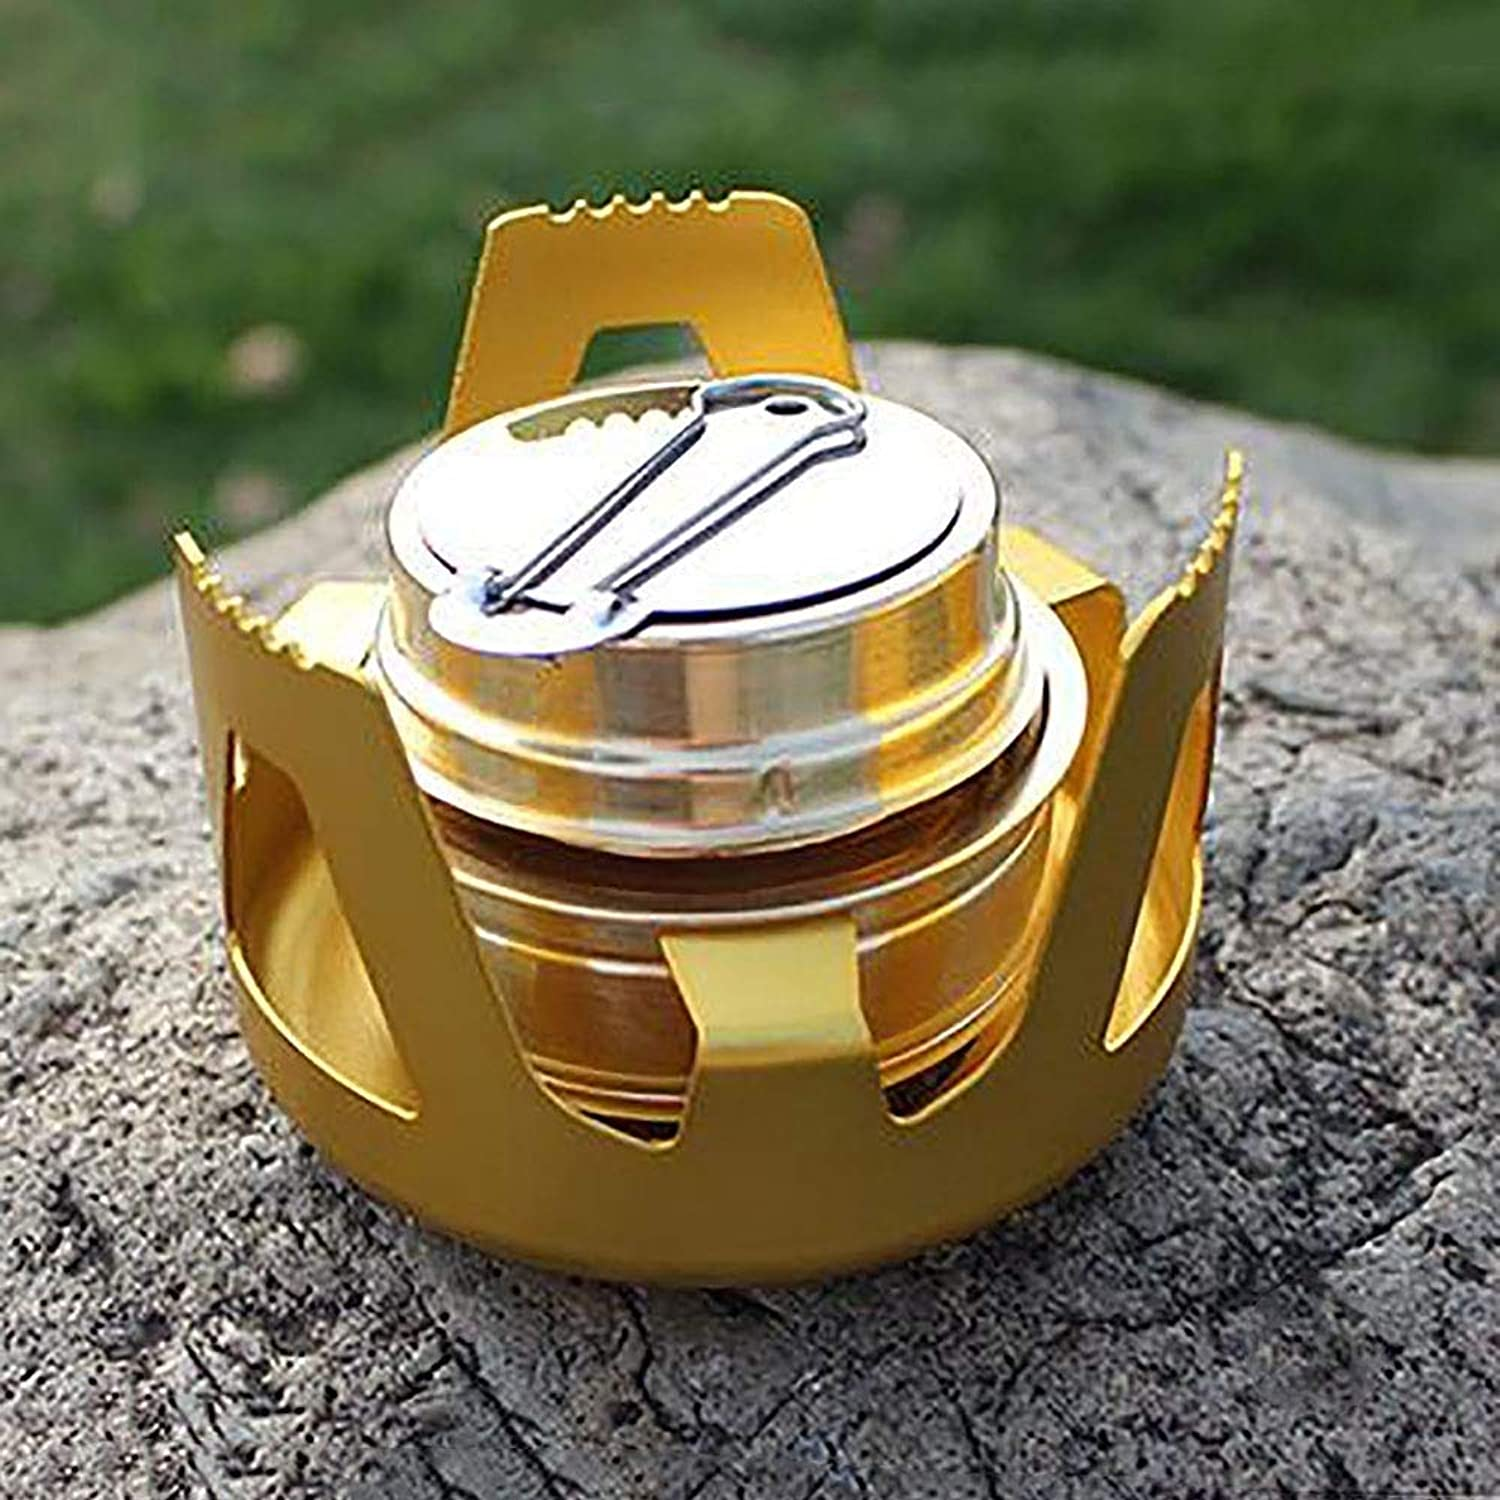 Camping Cooking Utensil Camping Stove Portable Alcohol Stove Stainless Steel Light Mini Alcohol Burning Stove Suitable for Outdoor Hiking Camping Cooking Barbecue Backpack Travel Grill Stove